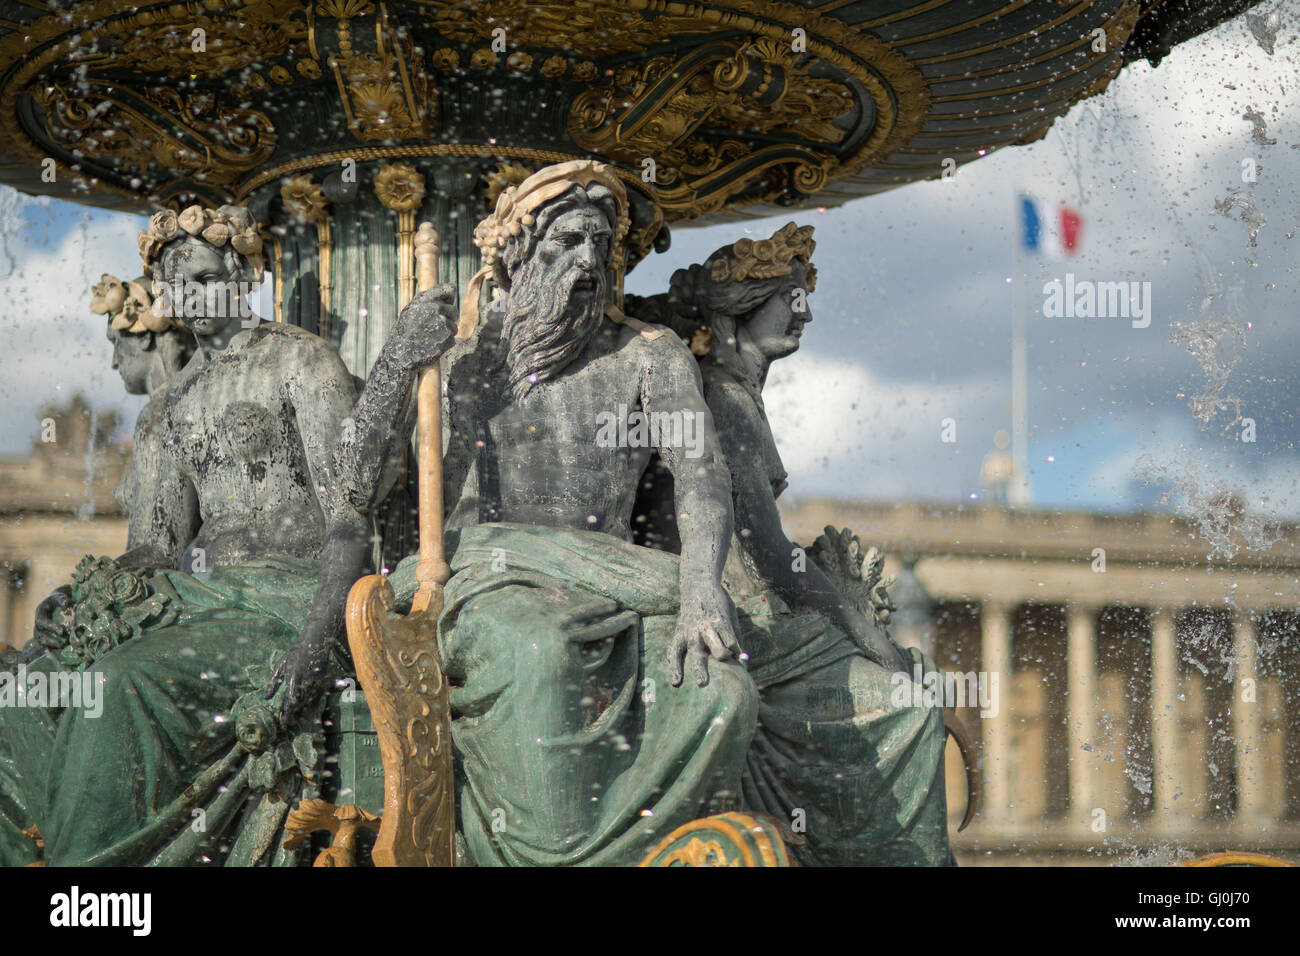 Place de la Concorde with french flag, Paris, France - Stock Image